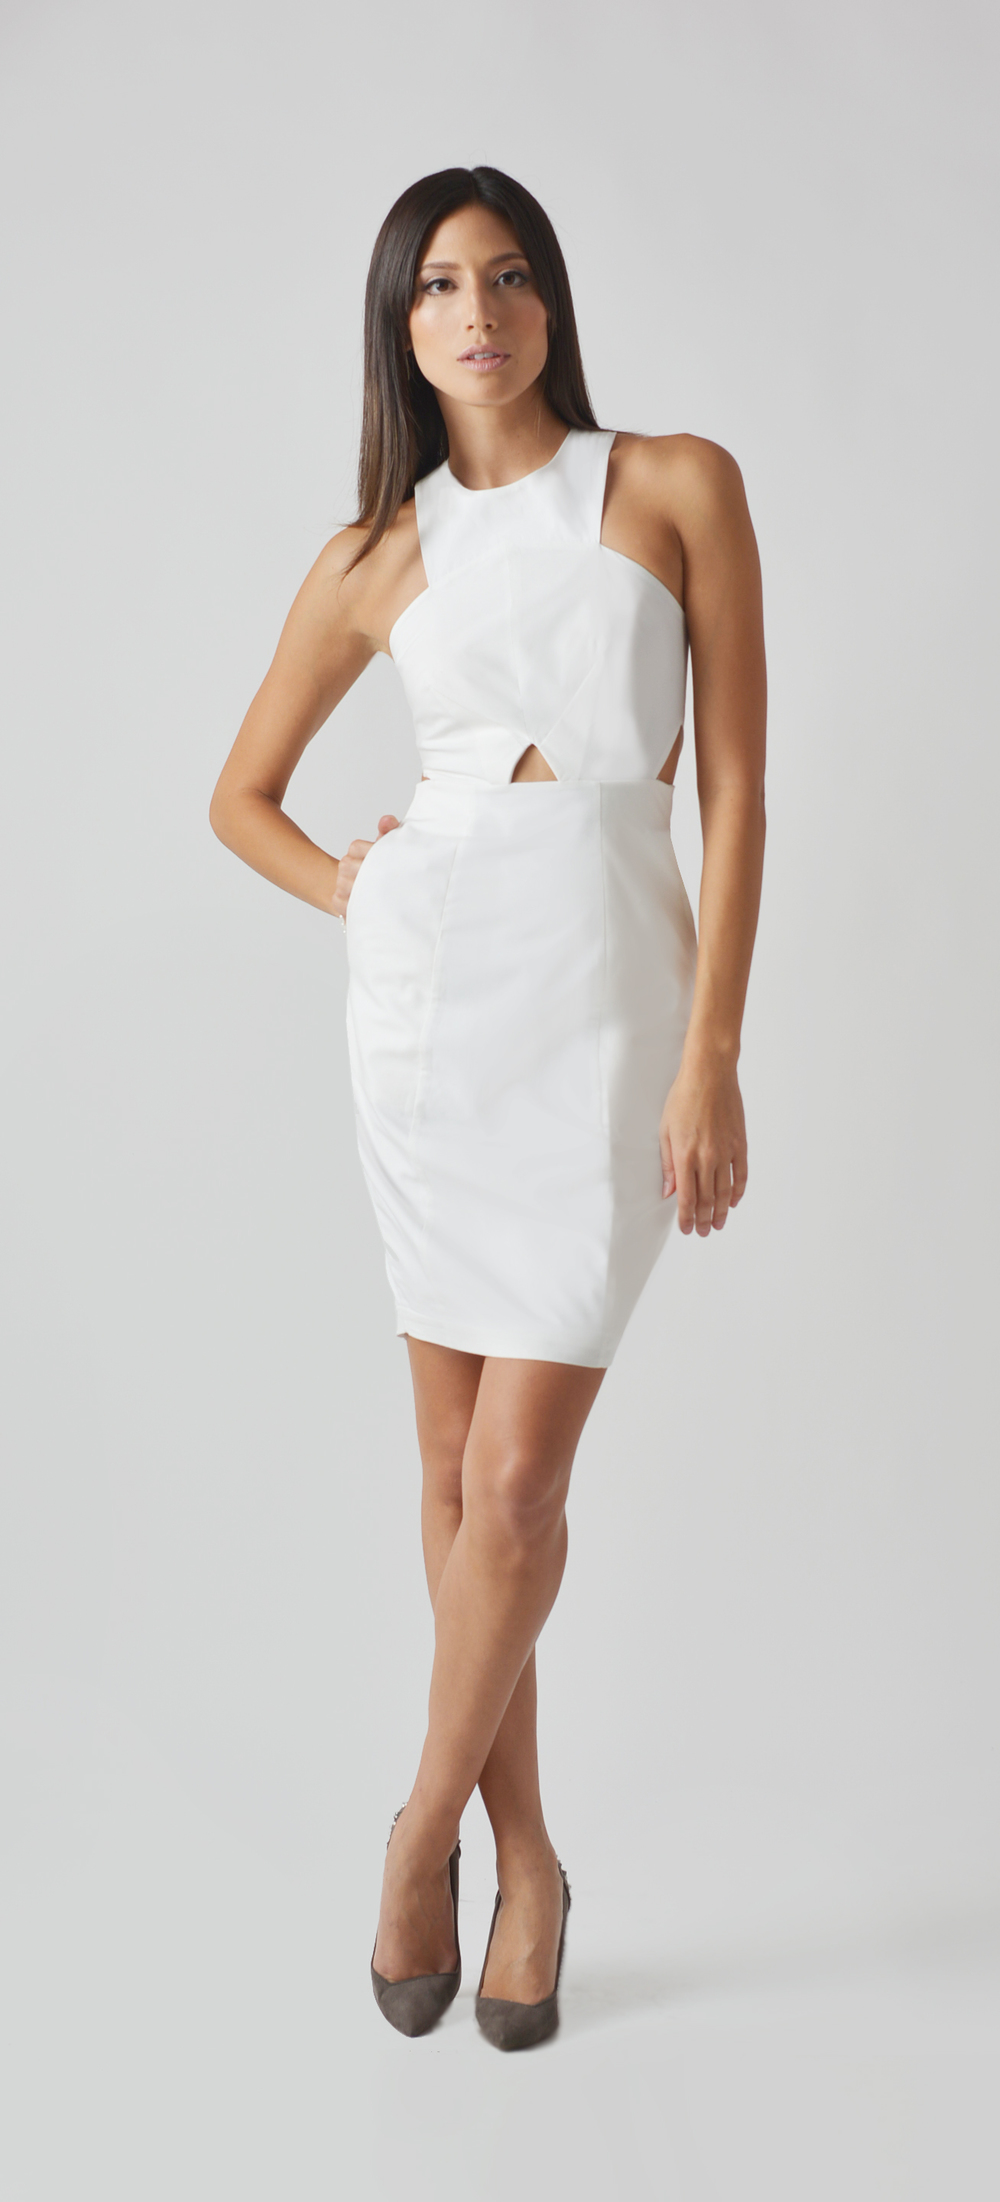 Model Olivia Jordan-White Cutout Dress.jpg